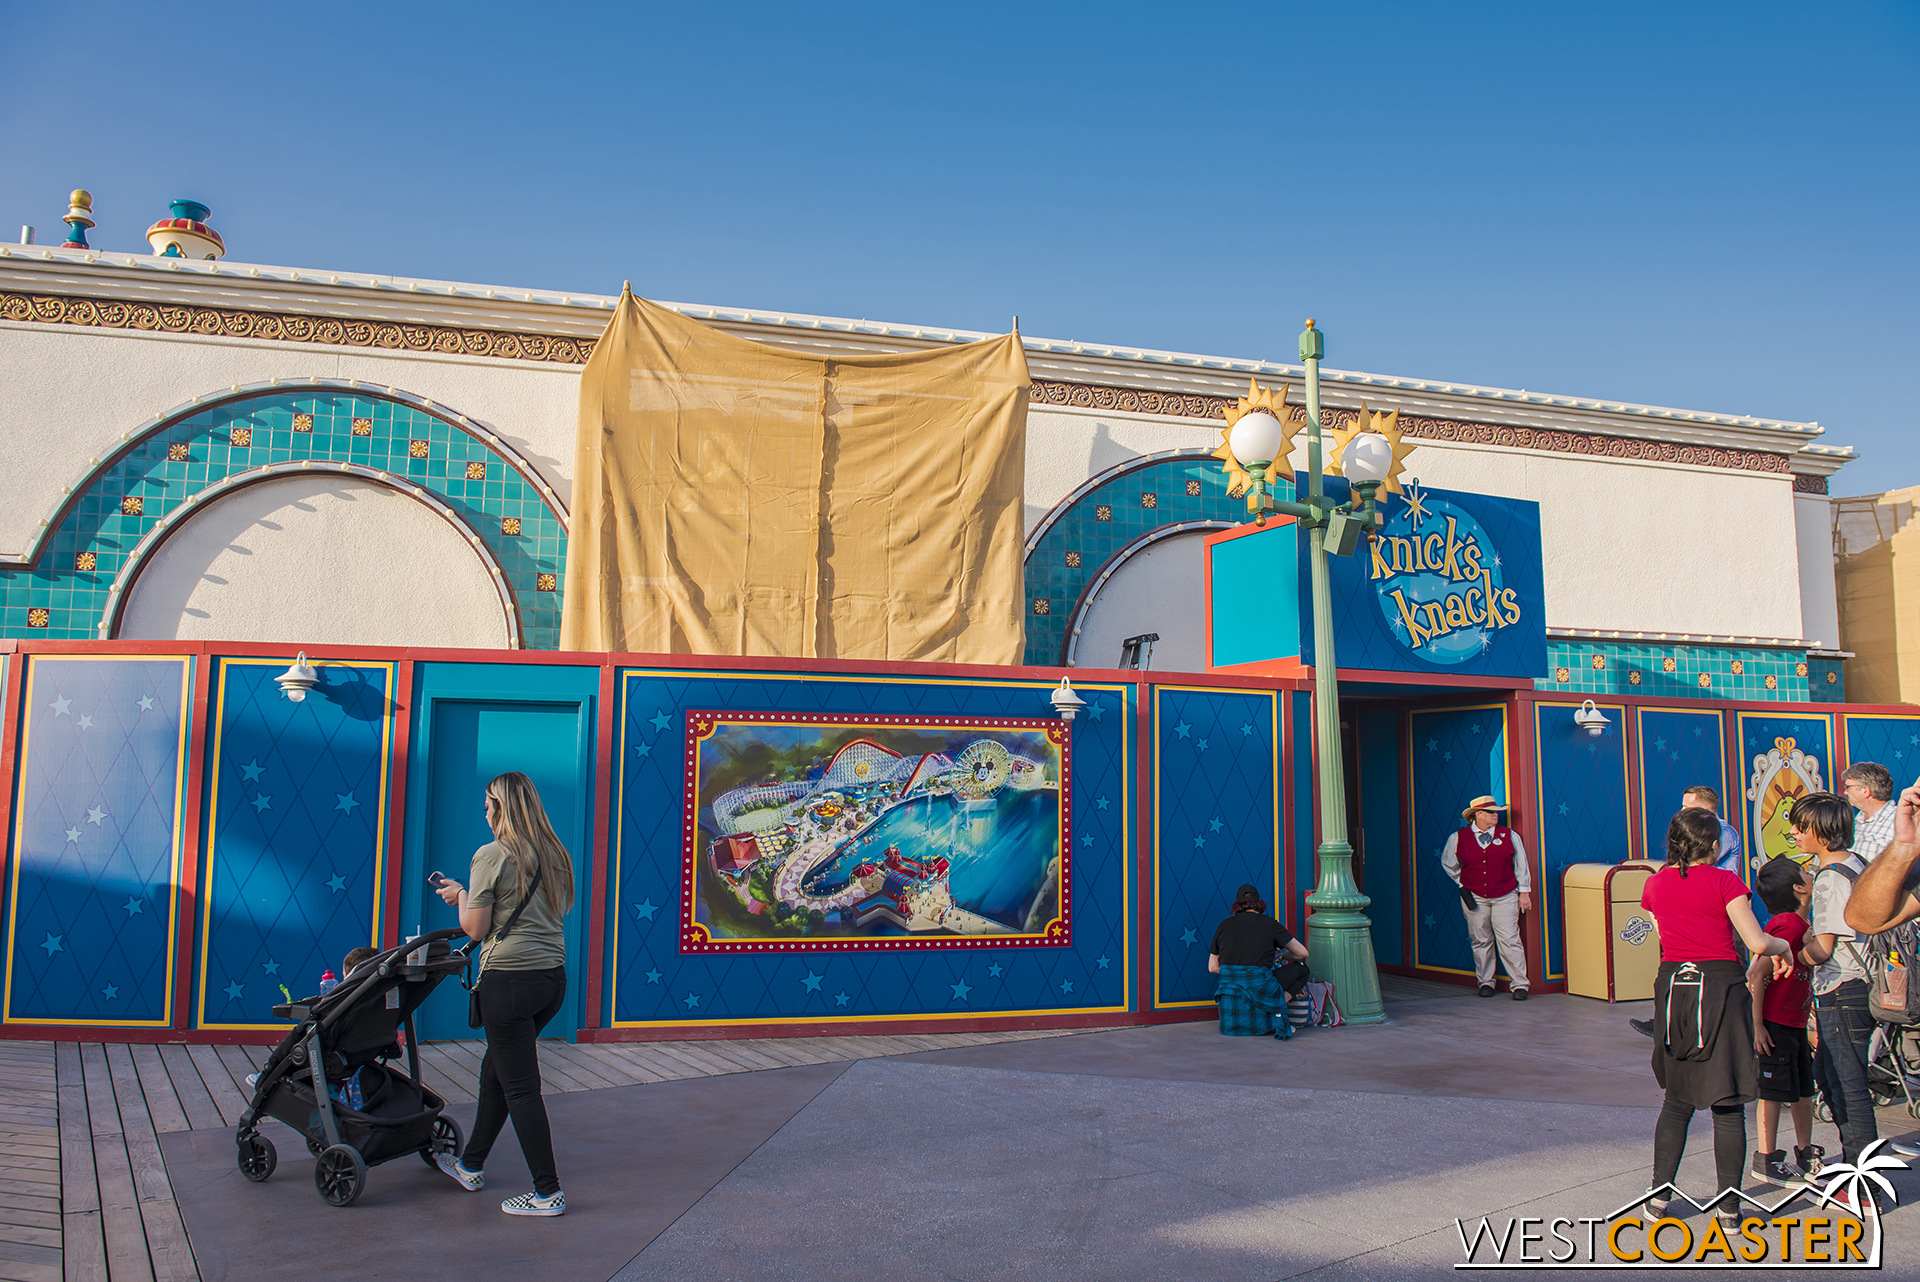 Across the way, the old Treasures in Paradise store has reopened as Knick's Knacks.